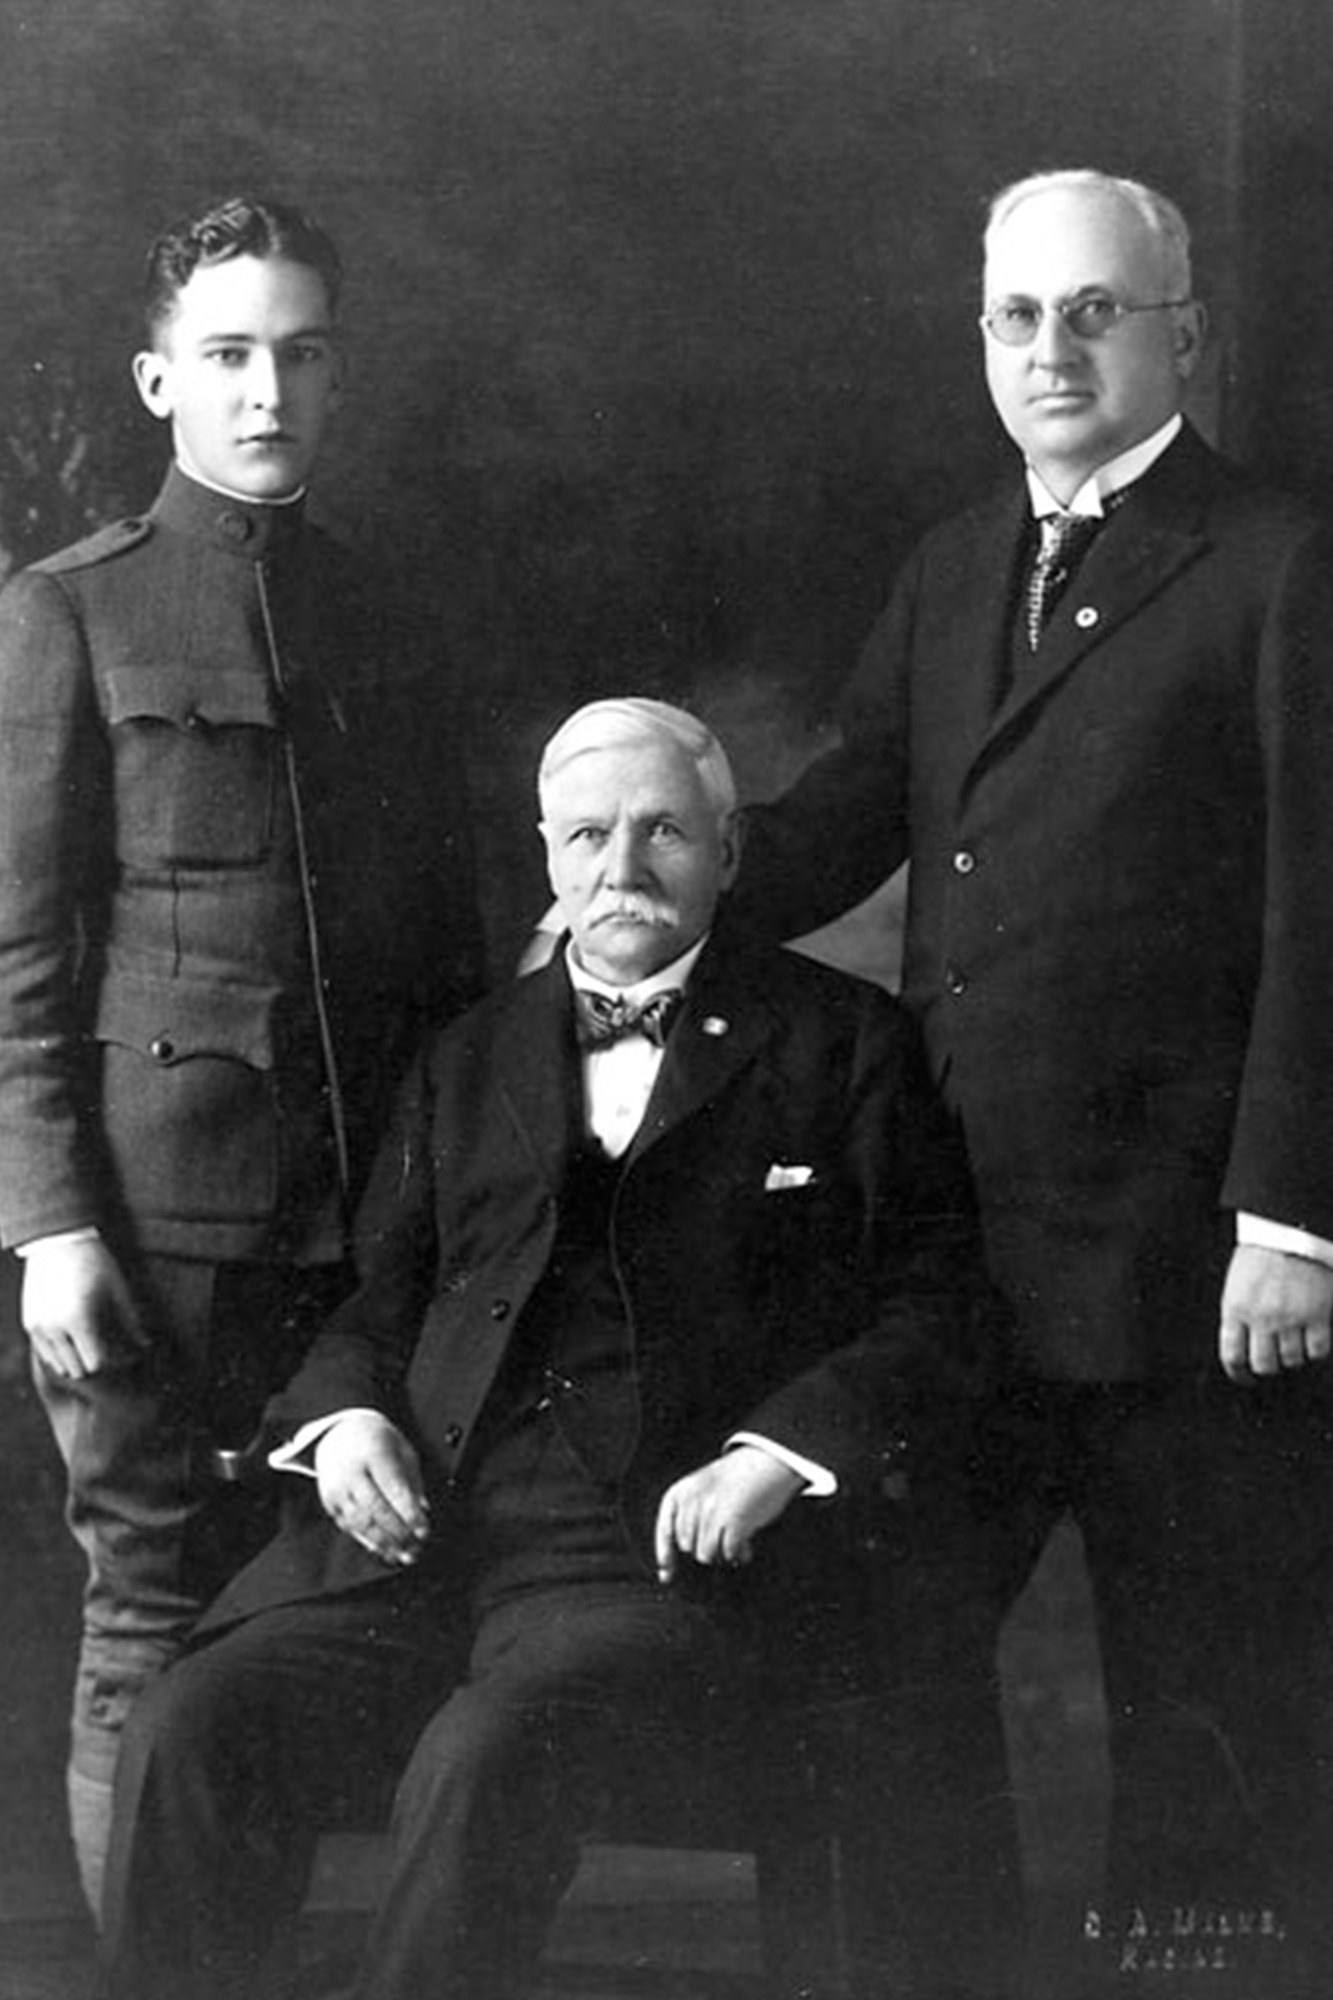 Herbert'in portresi. F. Johnson, Sr. Samuel Curtis Johnson ve Herbert F. Johnson, Jr. ile